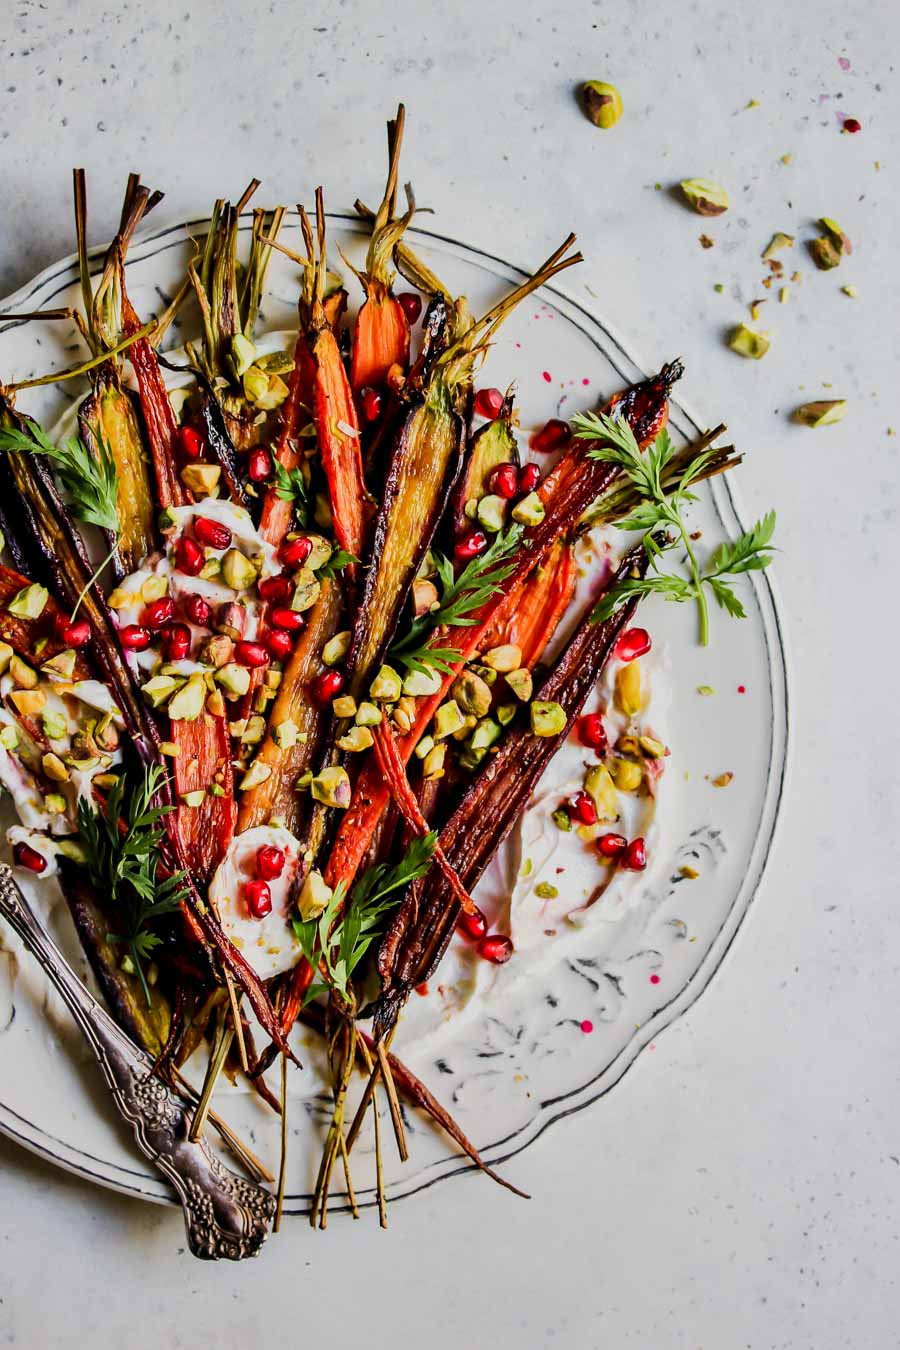 5 Ingredient Pomegranate-Glazed Carrots with Whipped Goat Cheese